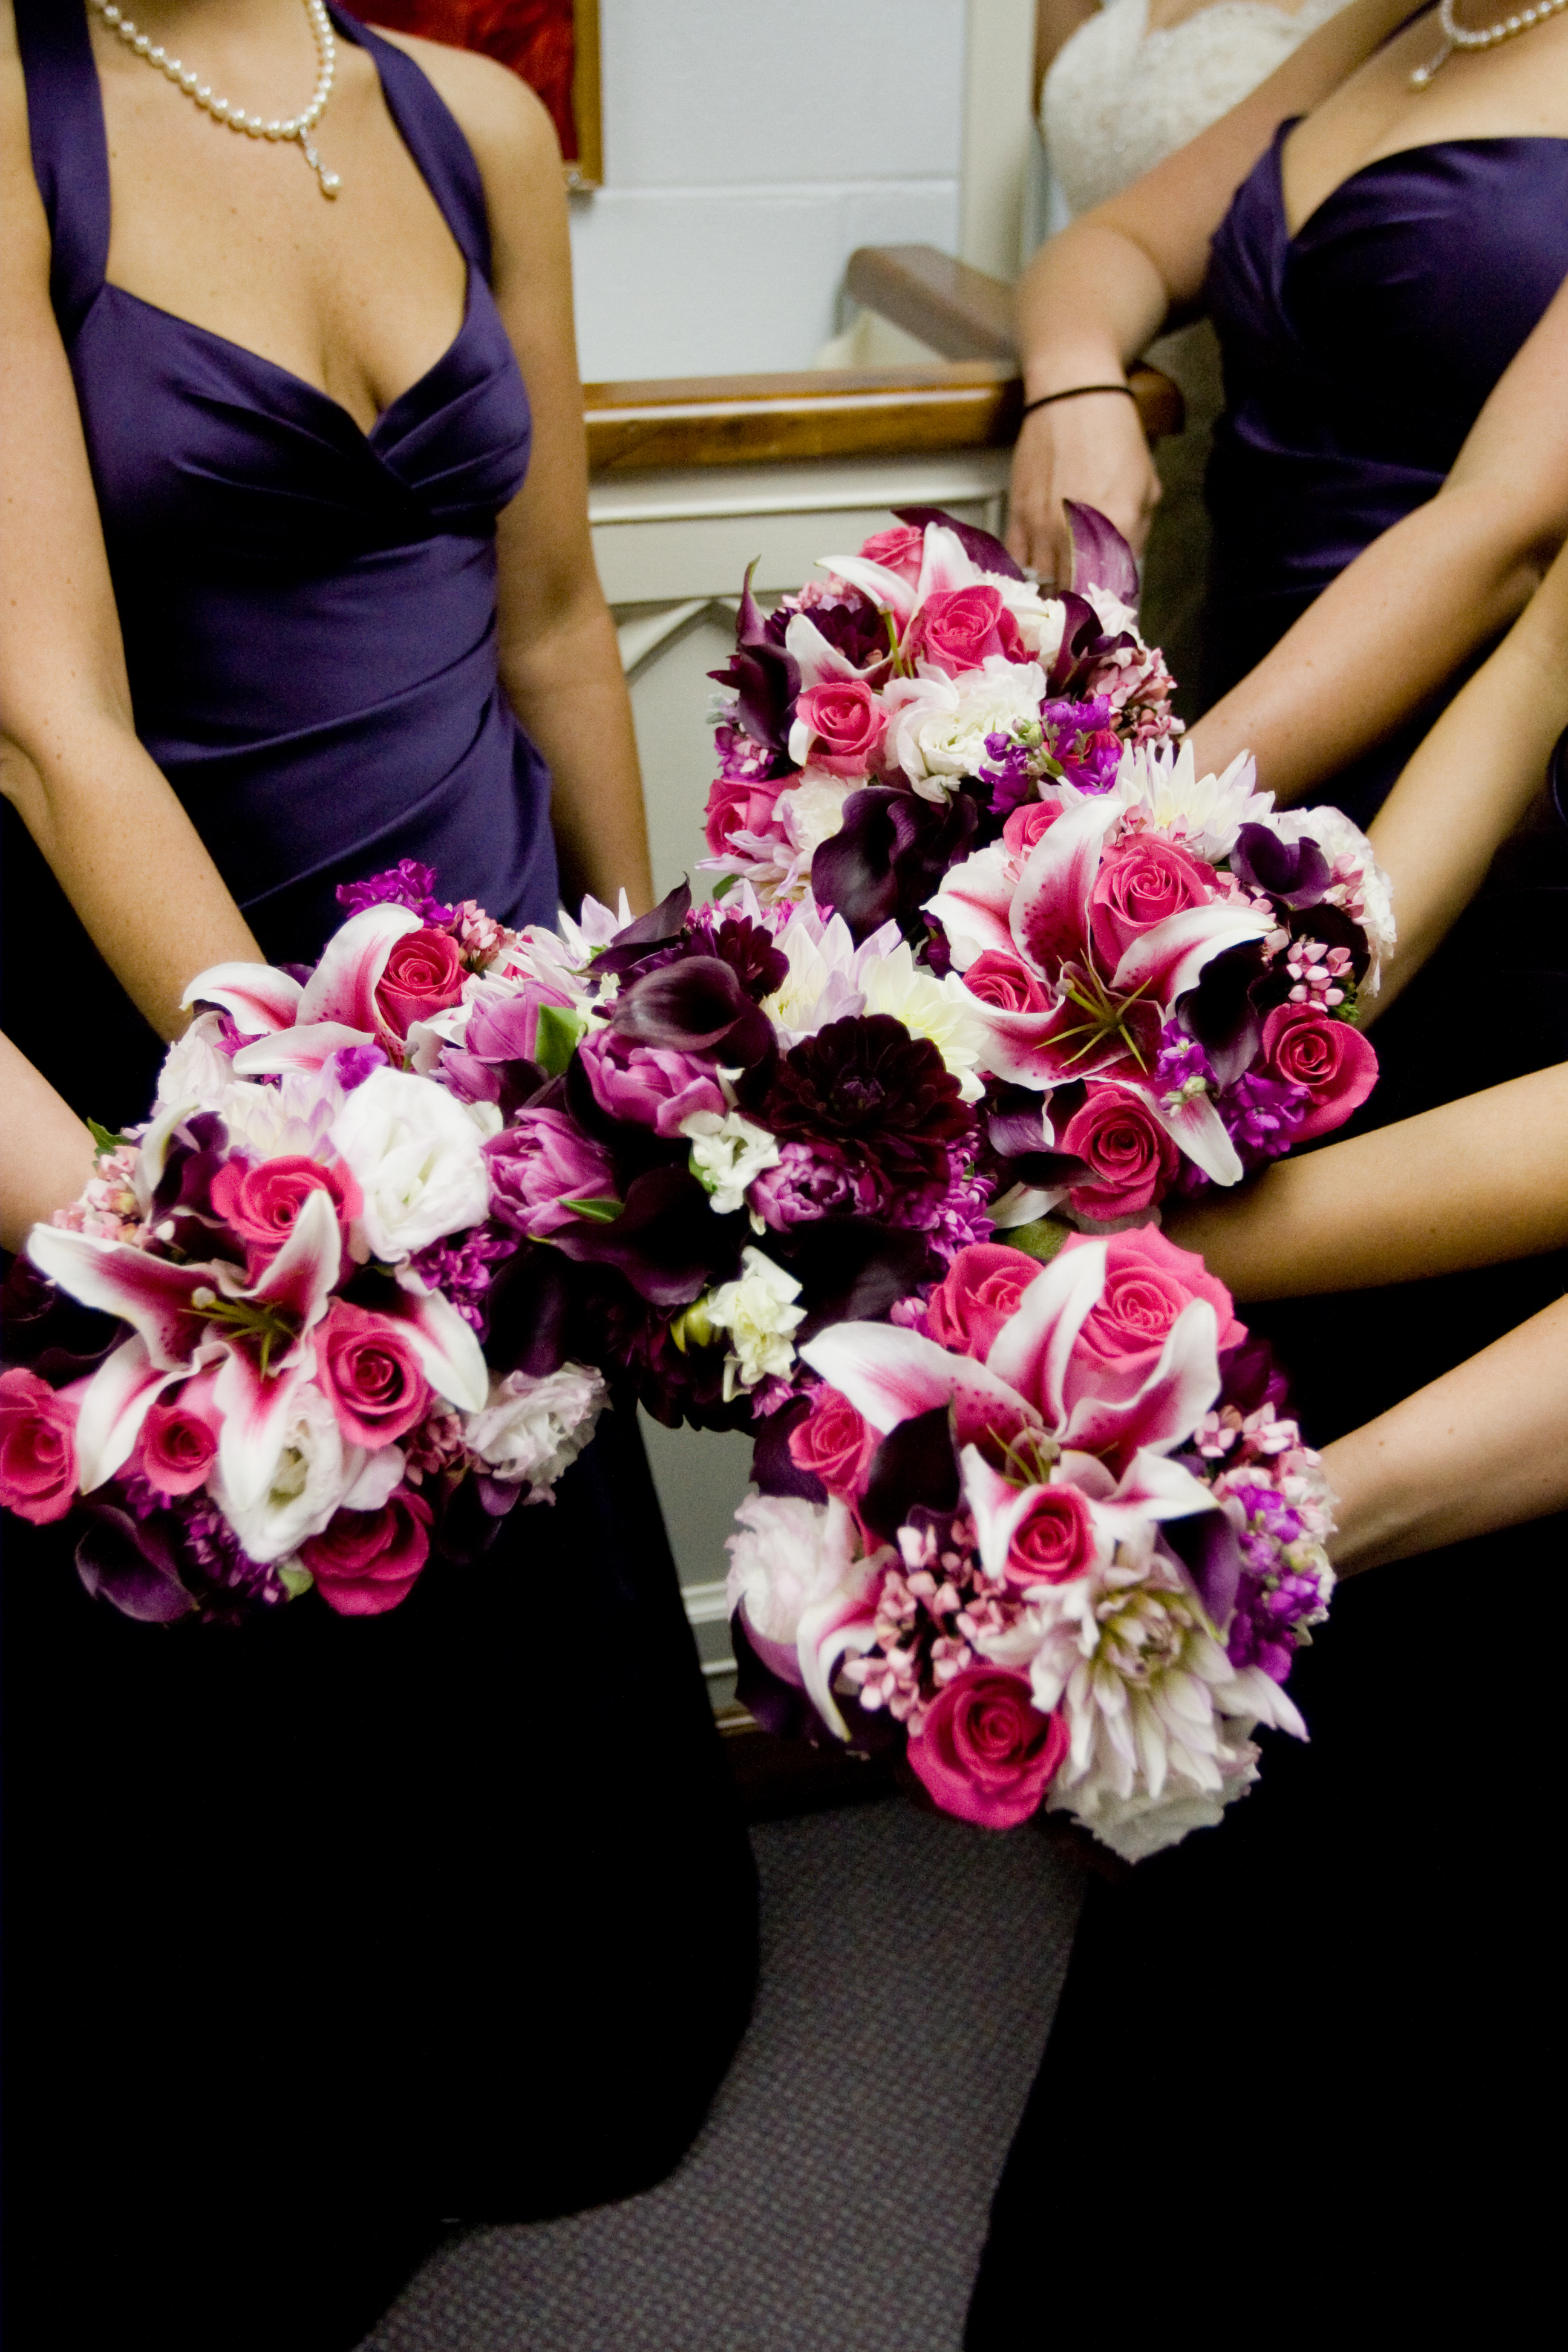 Flowers & Decor, Bridesmaids, Bridesmaids Dresses, Fashion, pink, purple, Bridesmaid Bouquets, Flowers, Dresses, Roberts and co, Flower Wedding Dresses